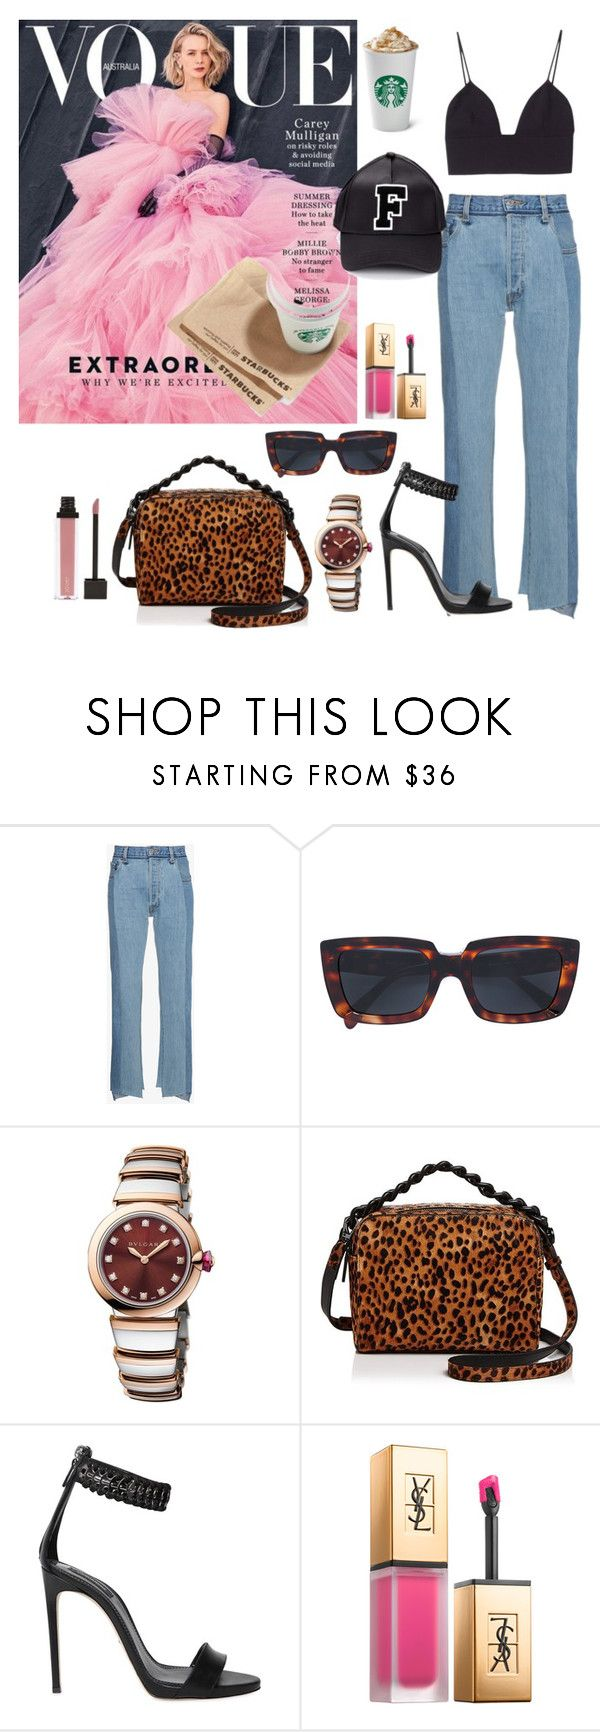 """Untitled #589"" by simran99 ❤ liked on Polyvore featuring Vetements, CÉLINE, Bulgari, Kendall + Kylie, Dsquared2, Yves Saint Laurent and Puma"